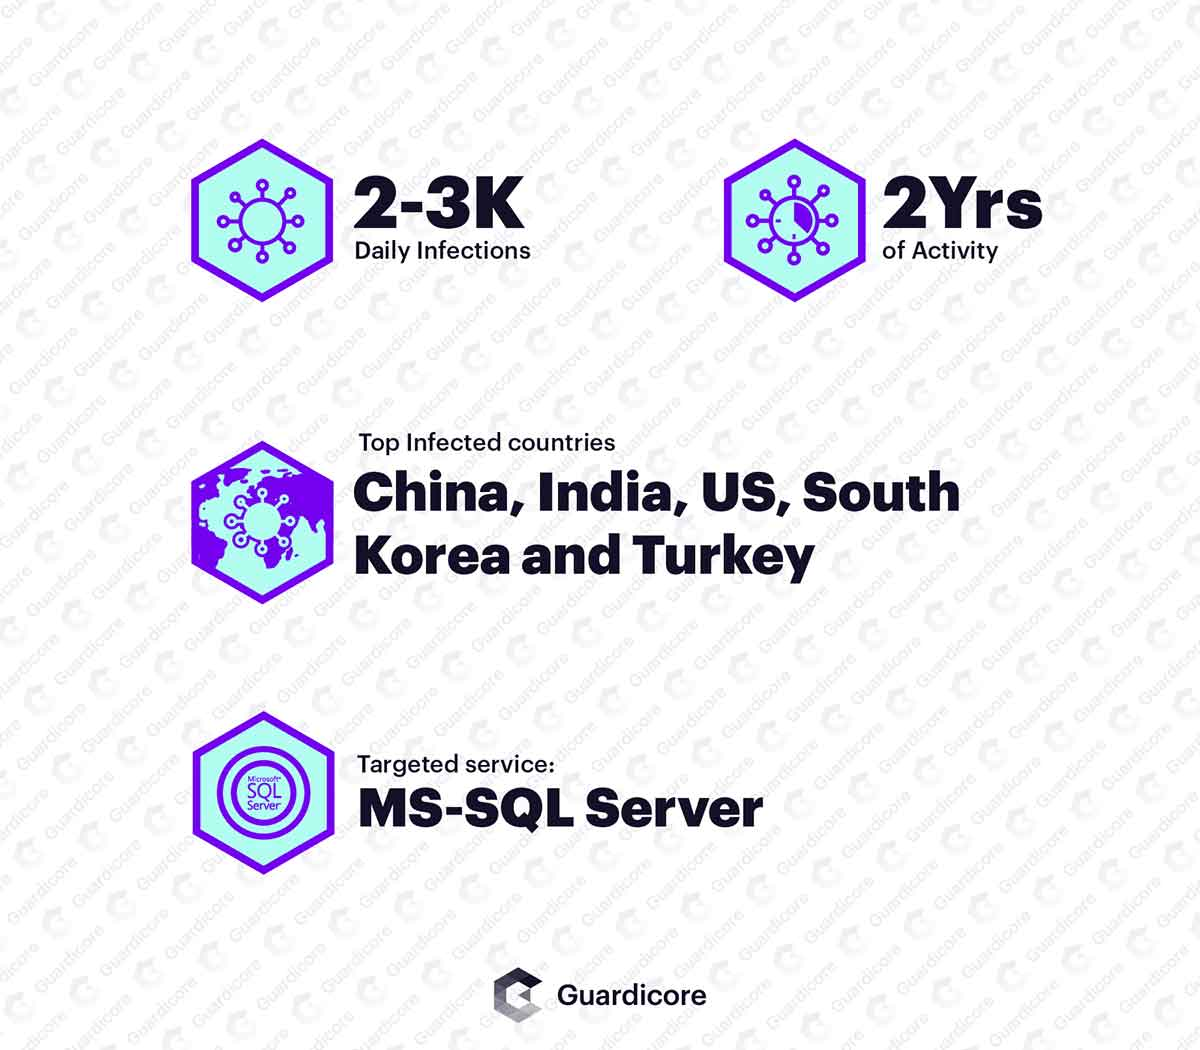 Vollgar Highlights: 2-3k infections per day, 2 years of activity, targeting MS-SQL servers and infecting mostly China, India, the US, South Korea and Turkey.